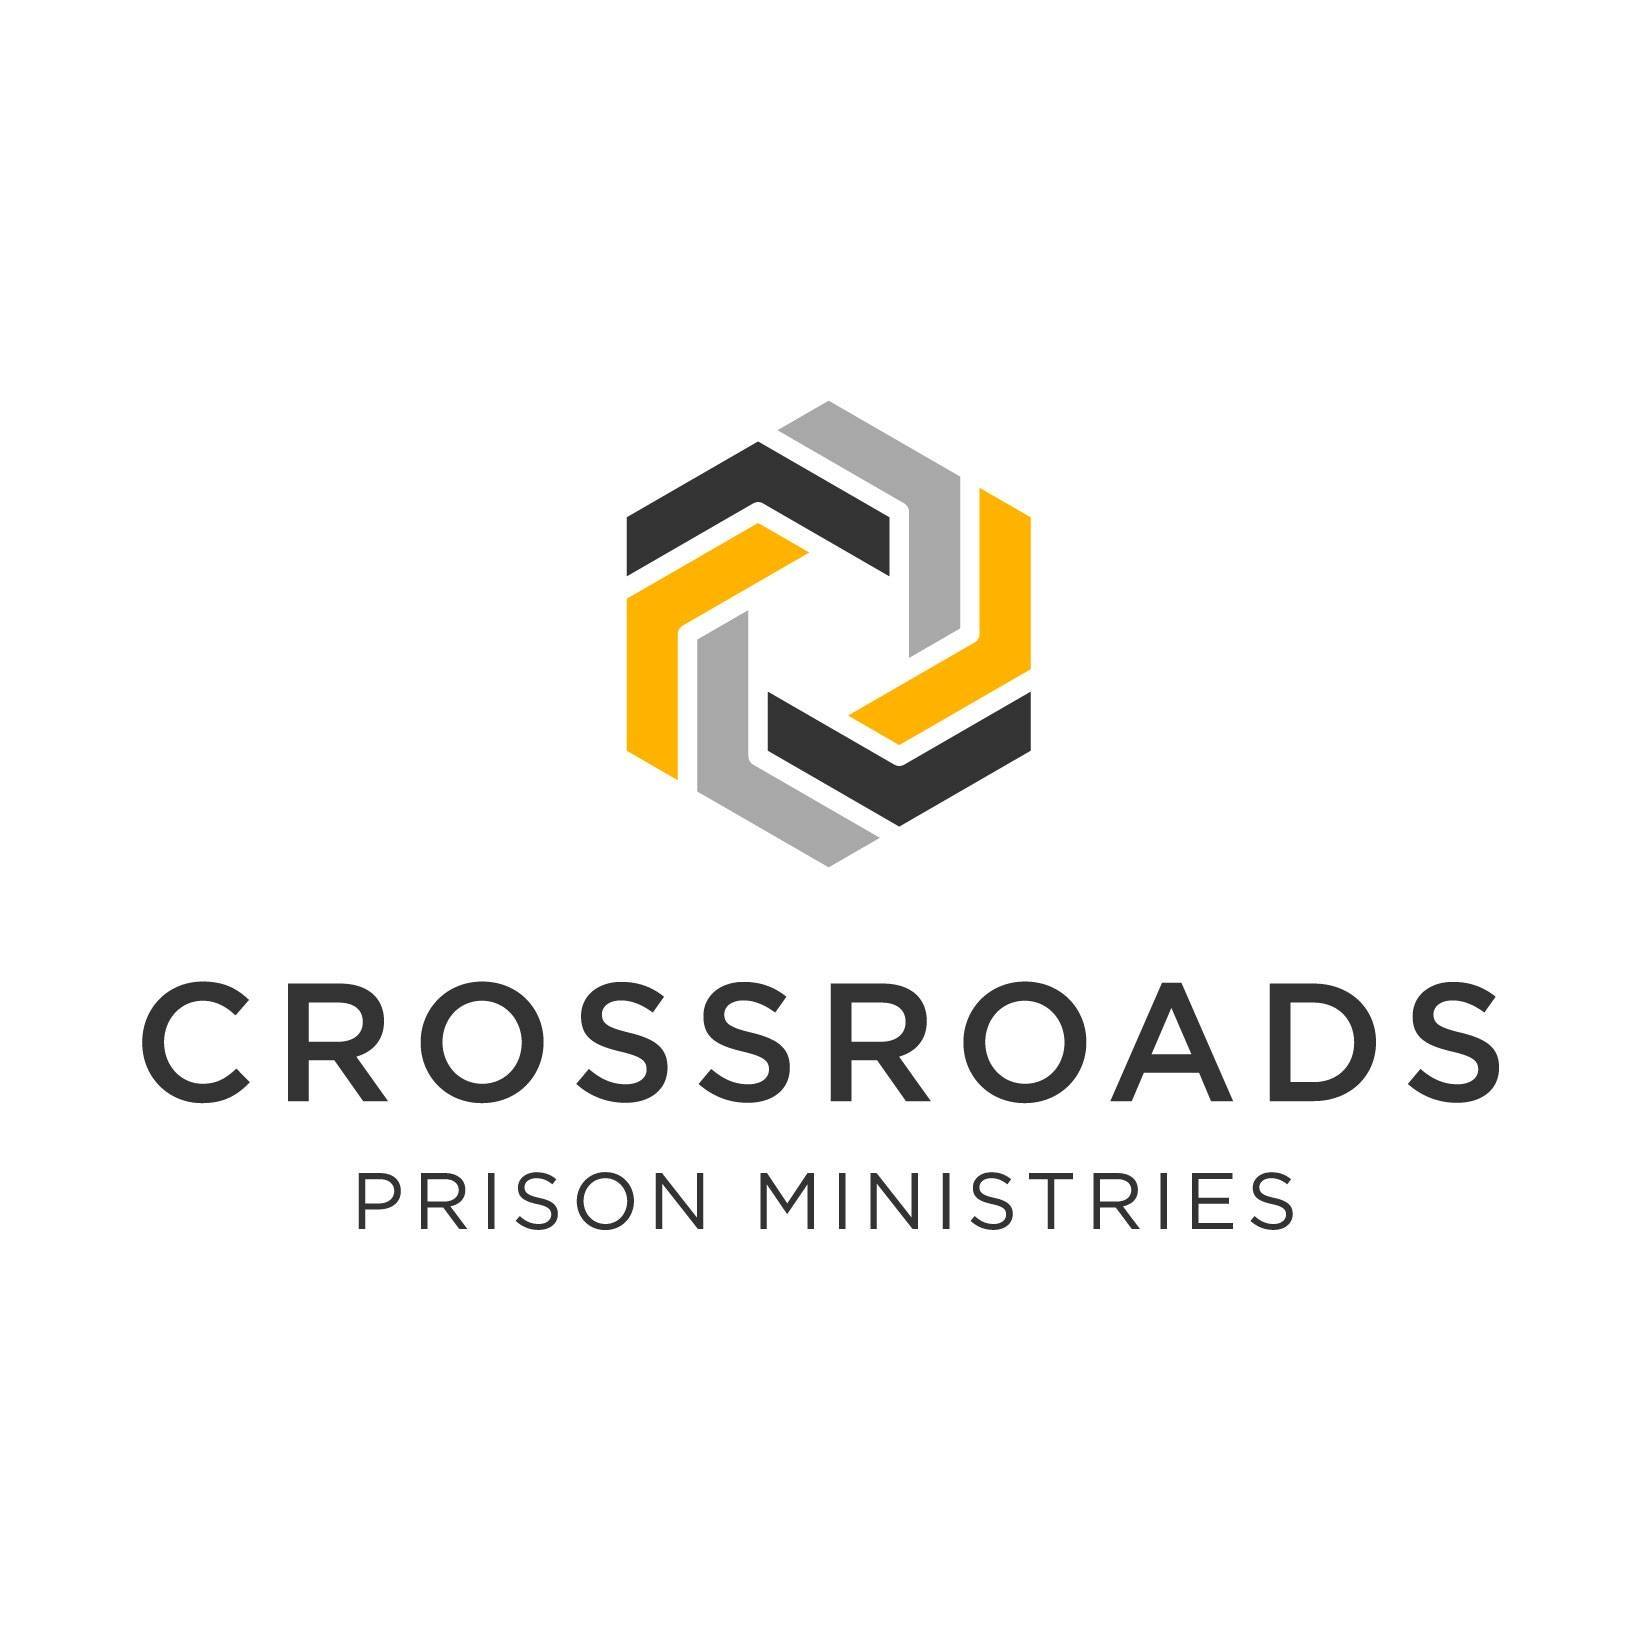 Crossroads Prison Ministries Establishing New Prison Ministry in Nepal